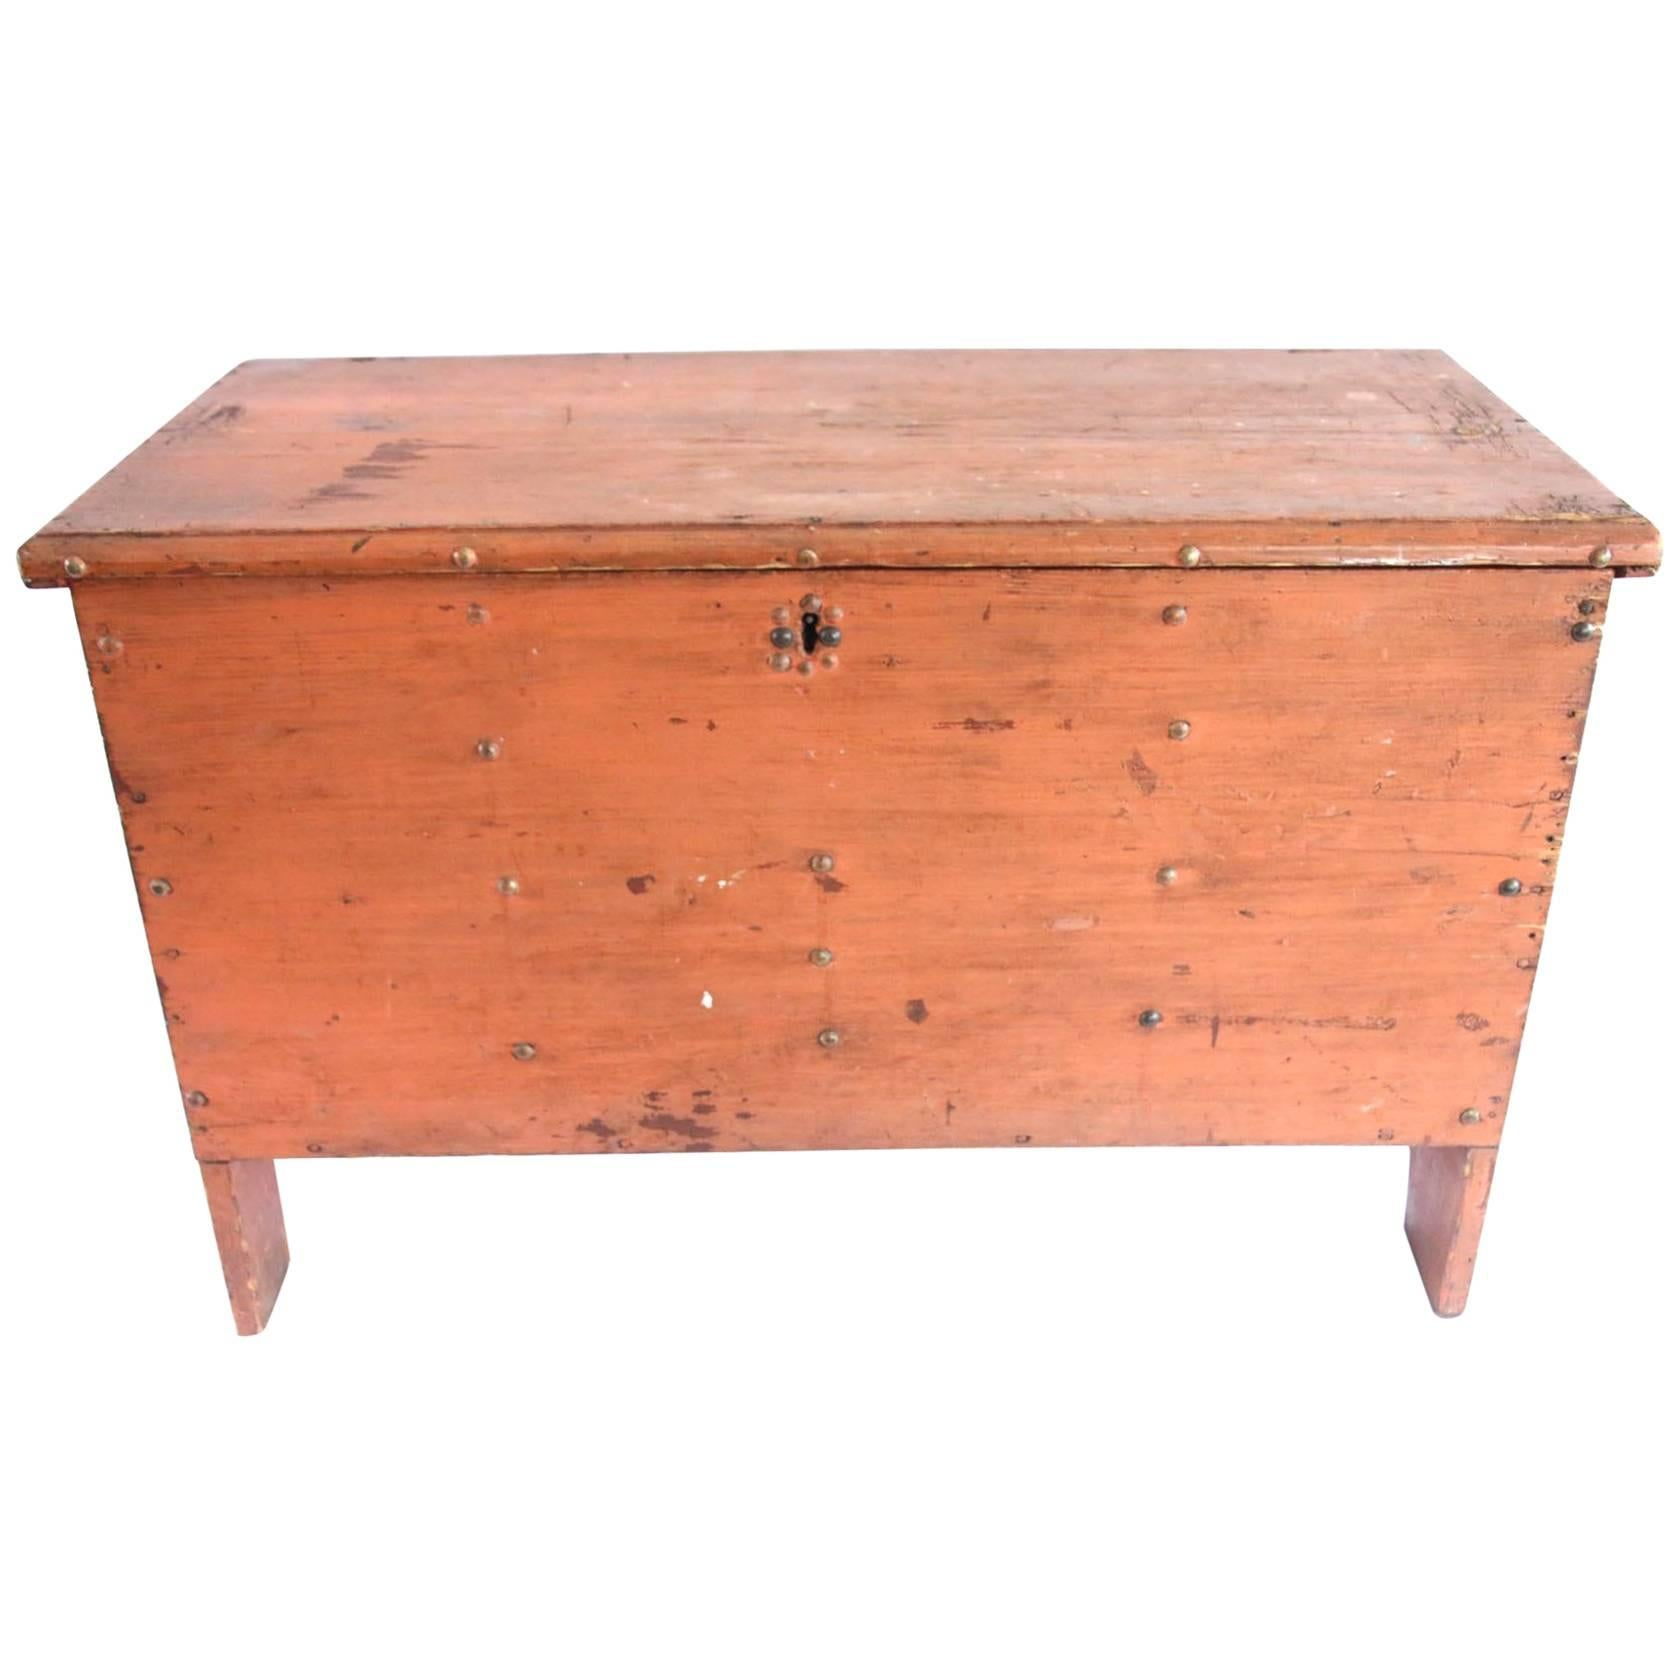 Early 19th Century Childu0027s Painted Blanket Chest